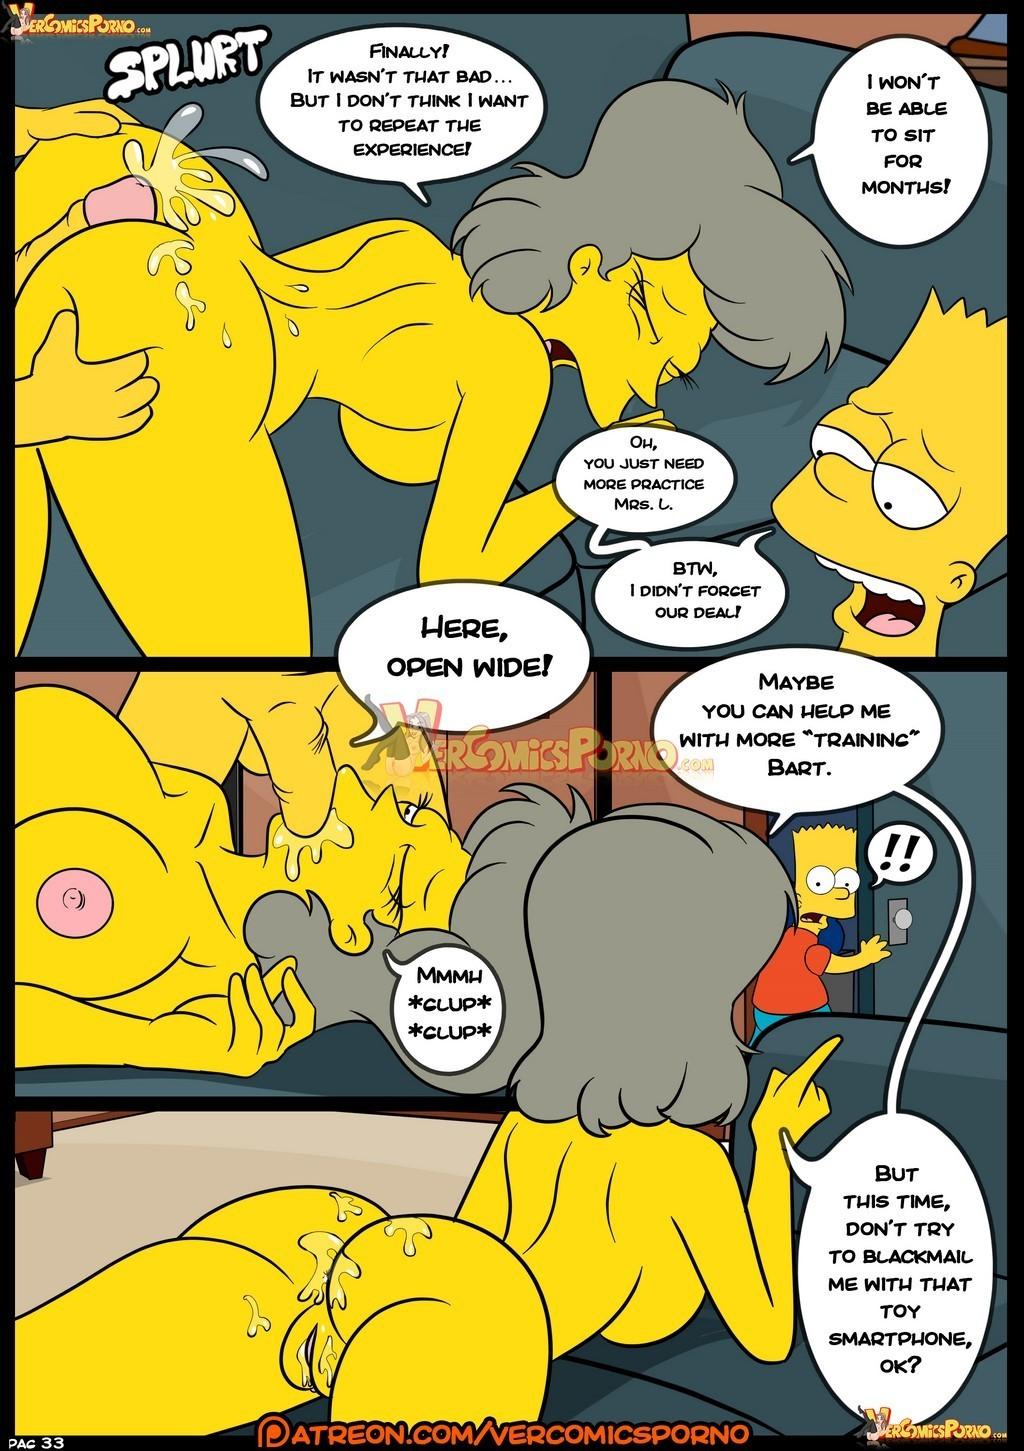 34 - The Simpsons. Part 8.